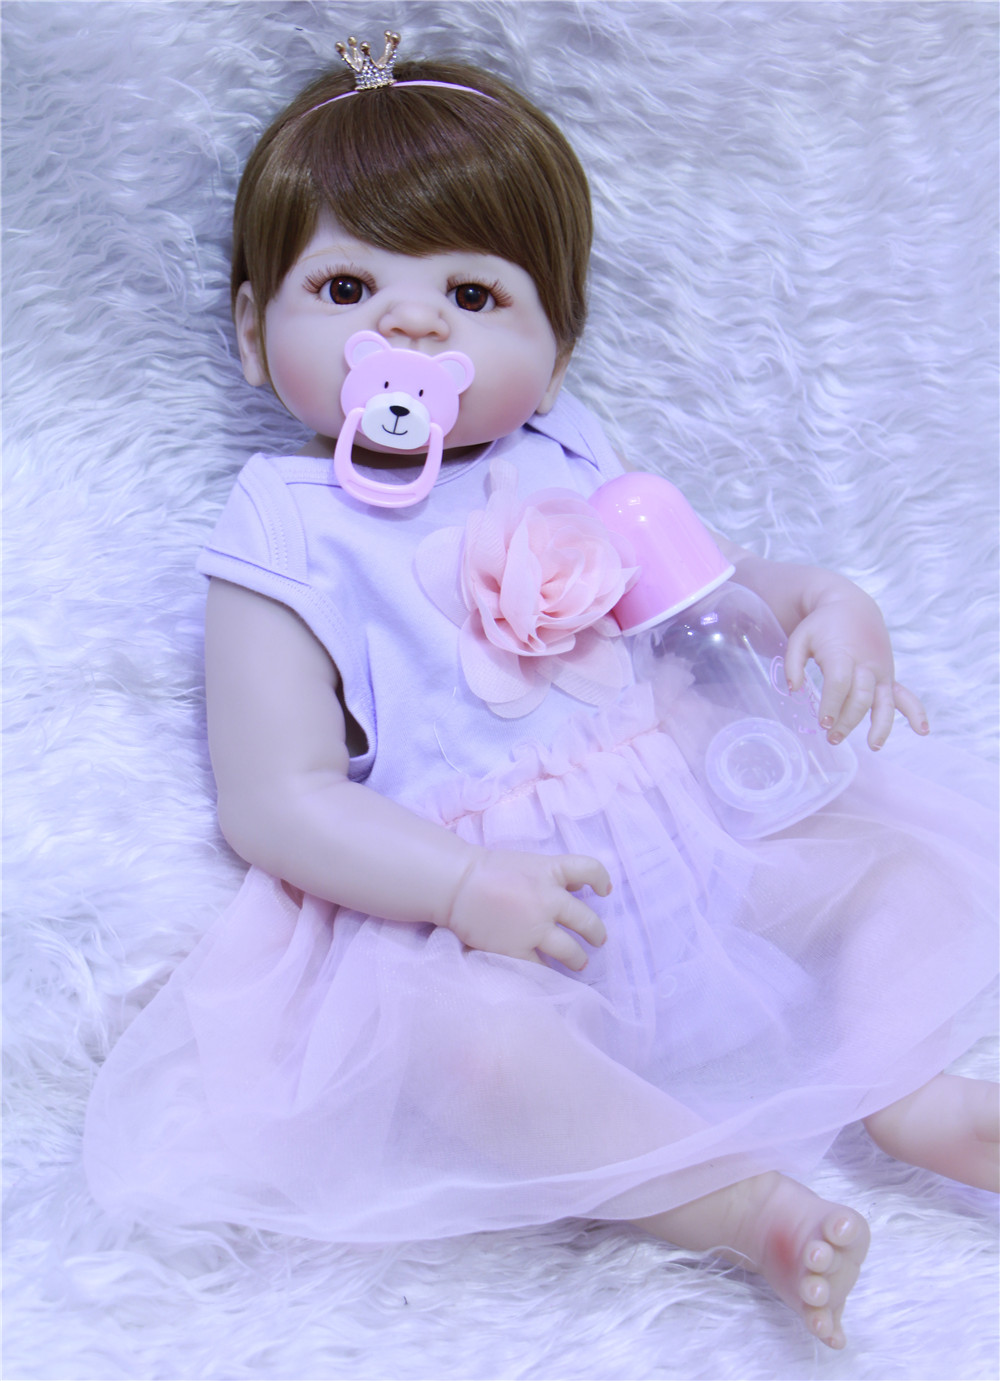 22inch New arrival DollMAI full body silicone reborn toys girl dolls soft silicone vinyl real gentle touch bebe collection doll